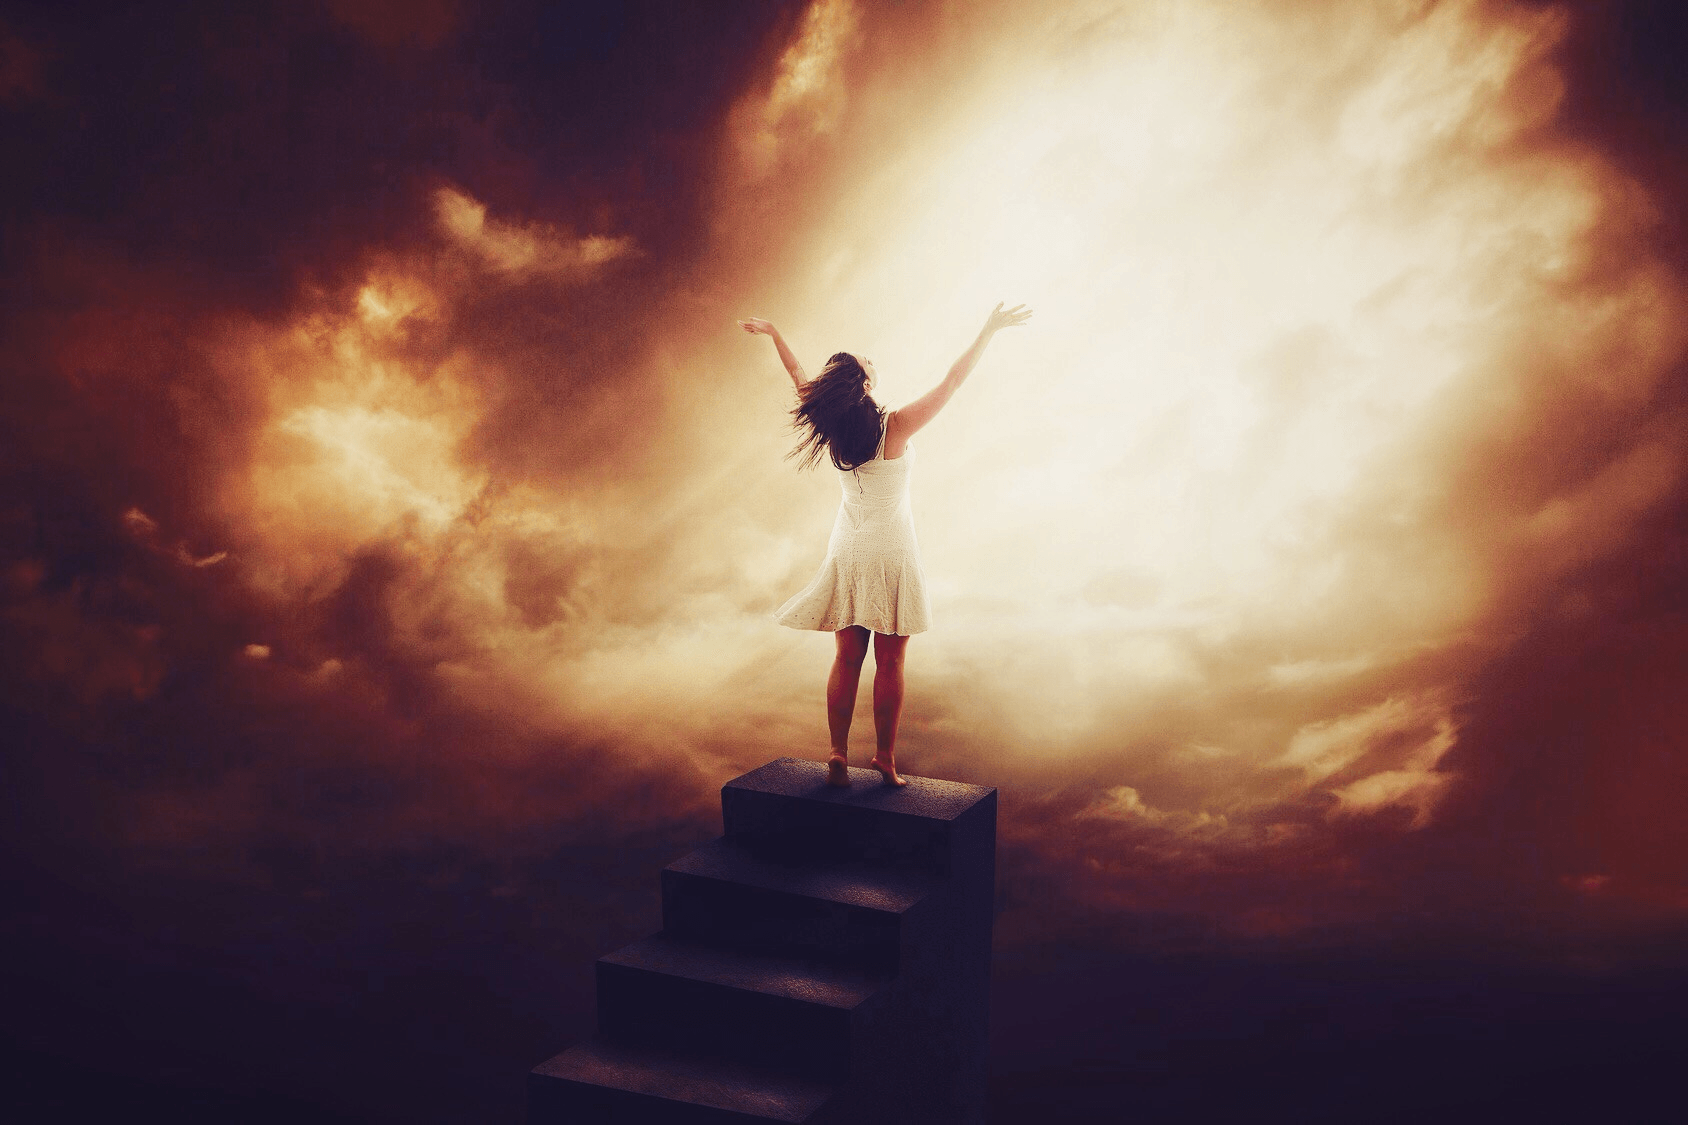 Ten Steps To Contacting Your Higher Self